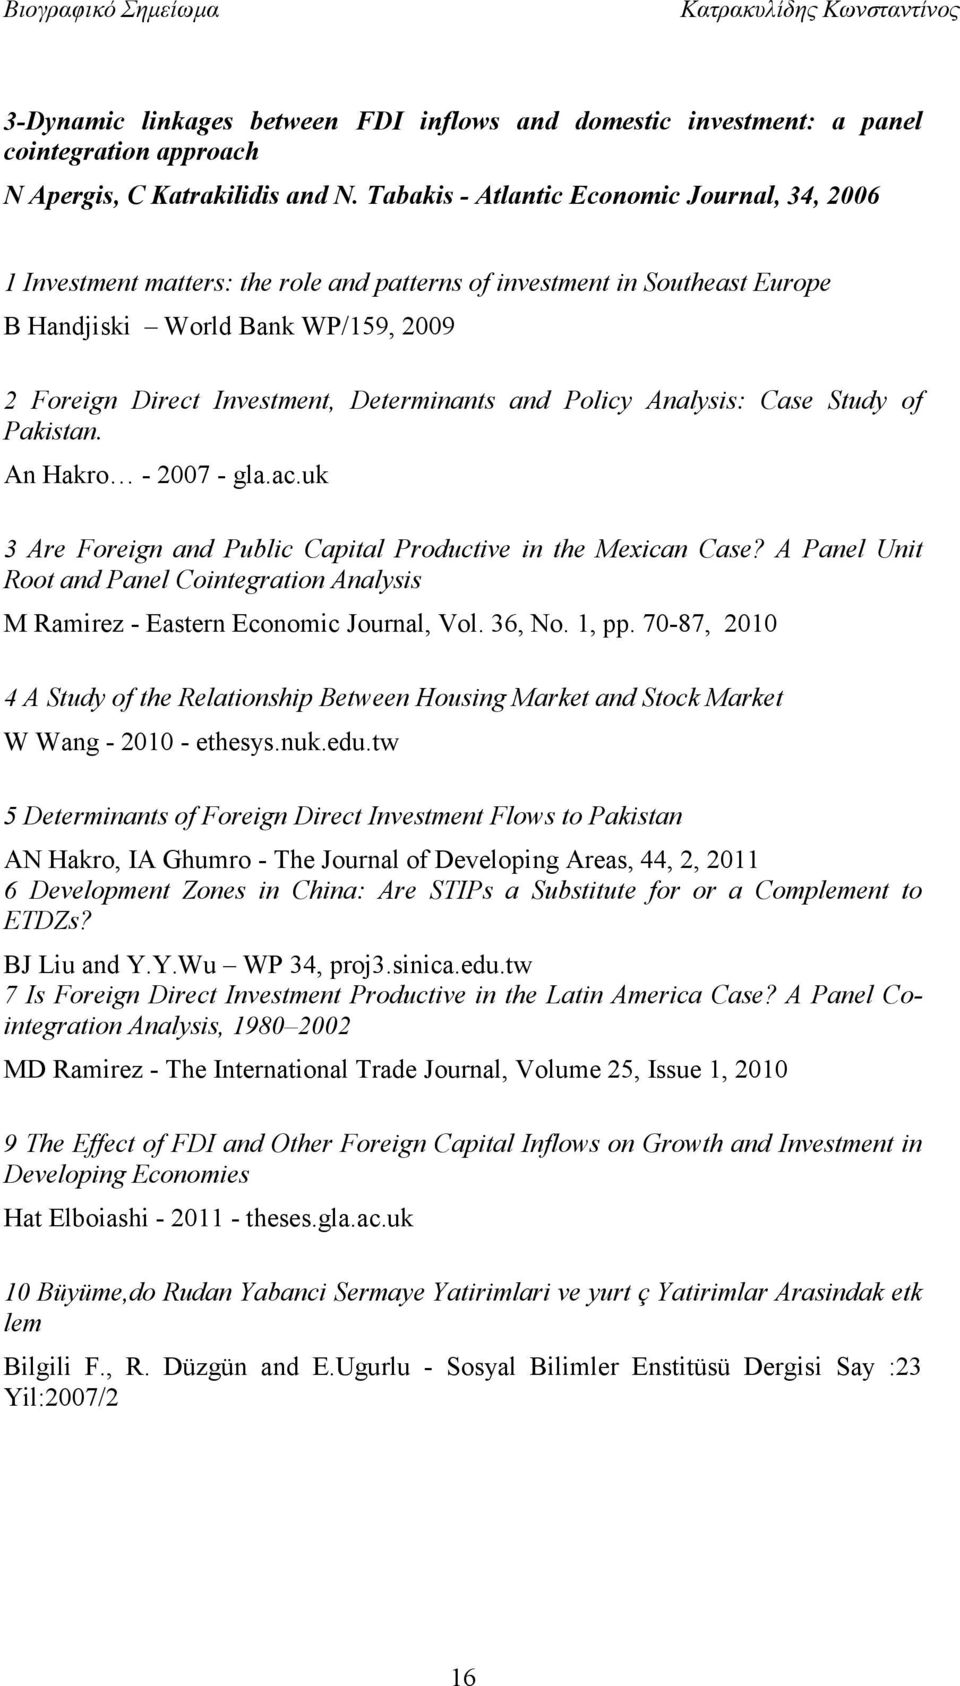 Determinants and Policy Analysis: Case Study of Pakistan. An Hakro - 2007 - gla.ac.uk 3 Are Foreign and Public Capital Productive in the Mexican Case?